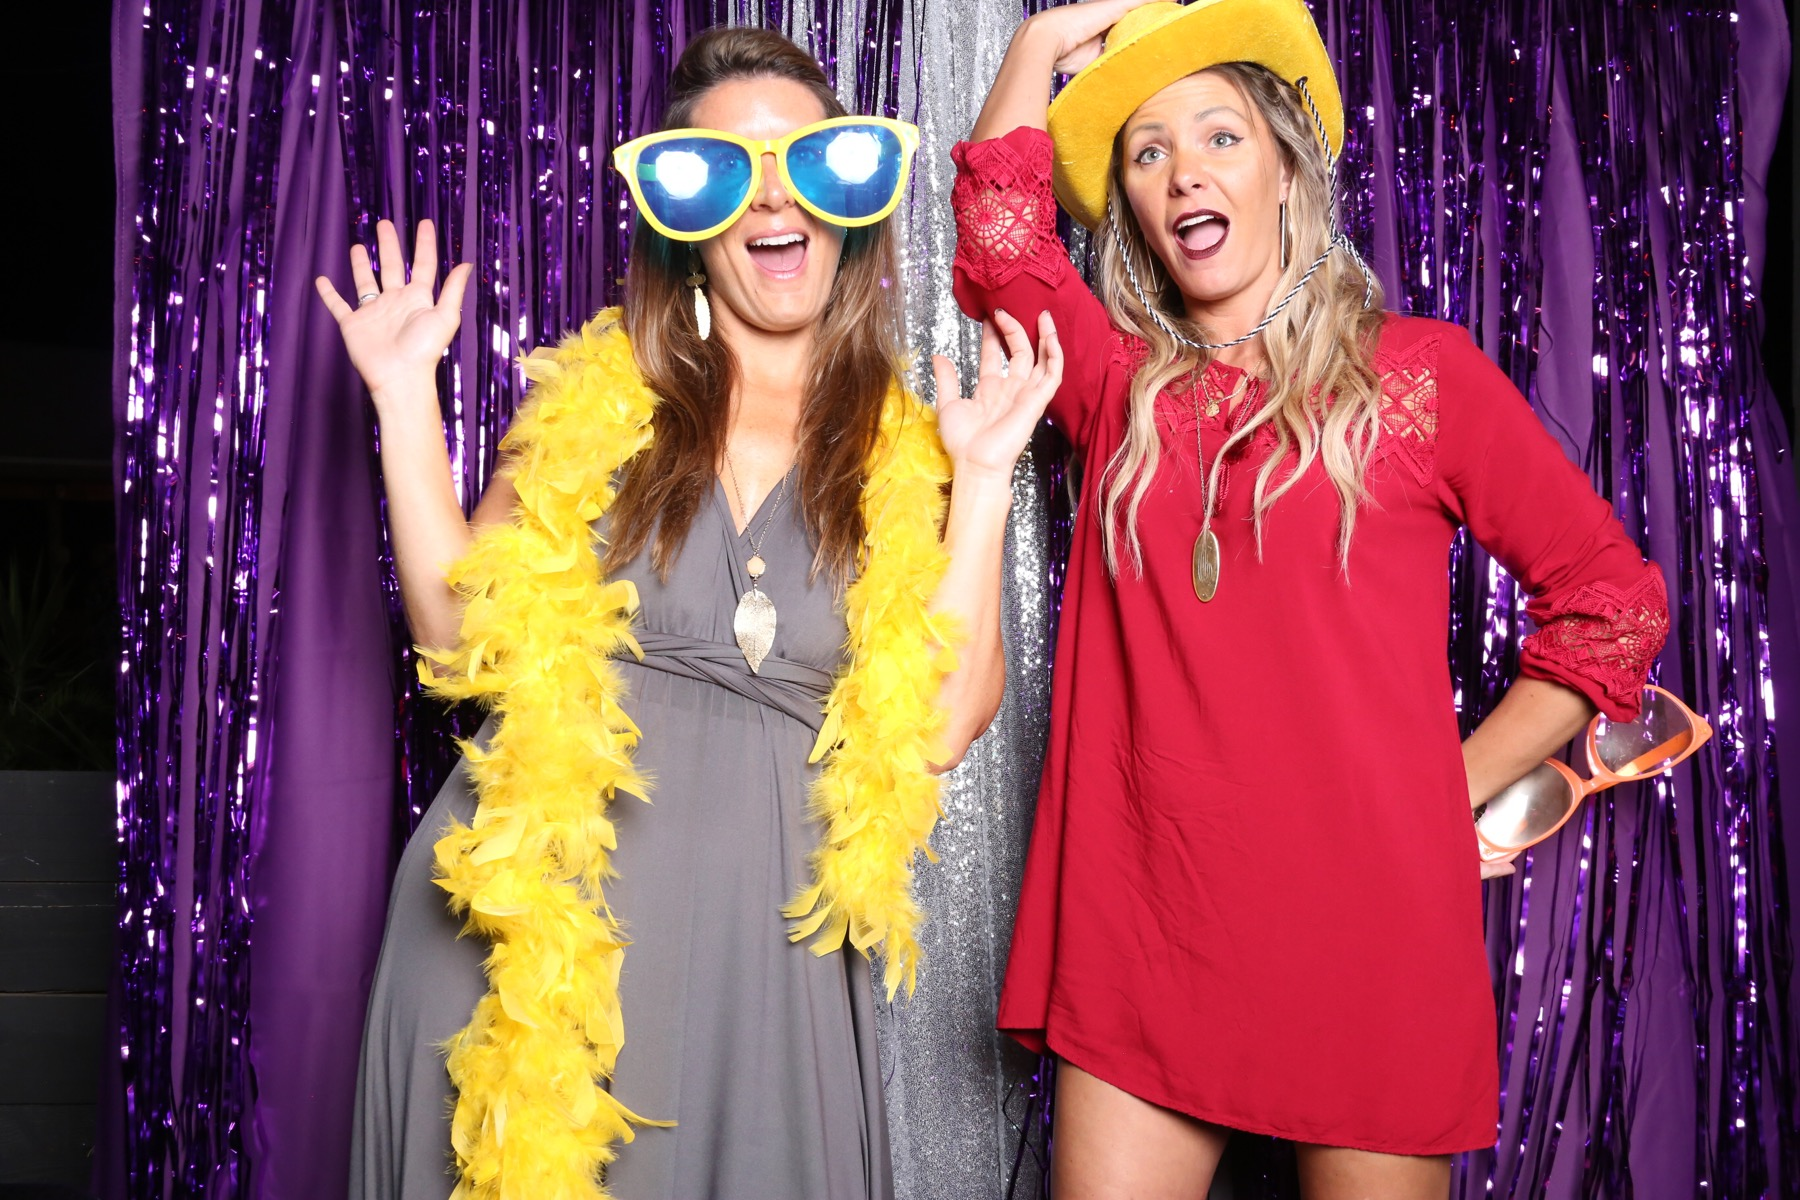 Photo Booth fun At Rebekah and Freddy's Wedding : Chamber Hart Photography Booth Chamber in De Leon Springs